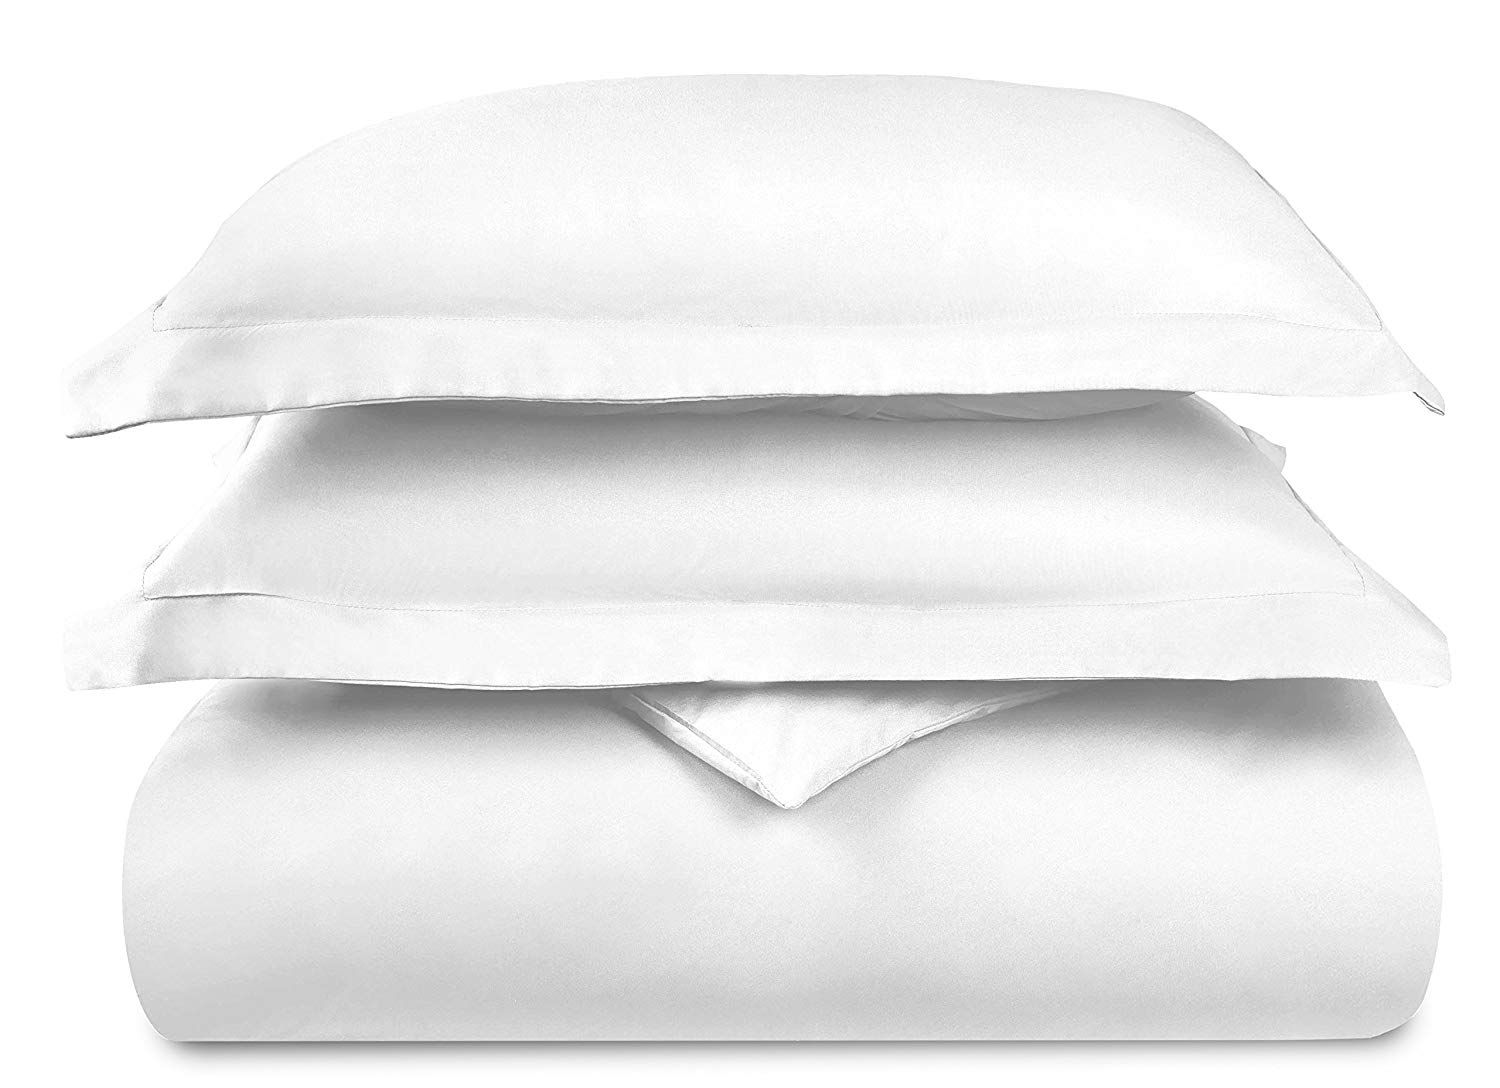 Duvet Cover Set-1500 Thread Count Egyptian Quality Ultra Silky Soft Top Premium